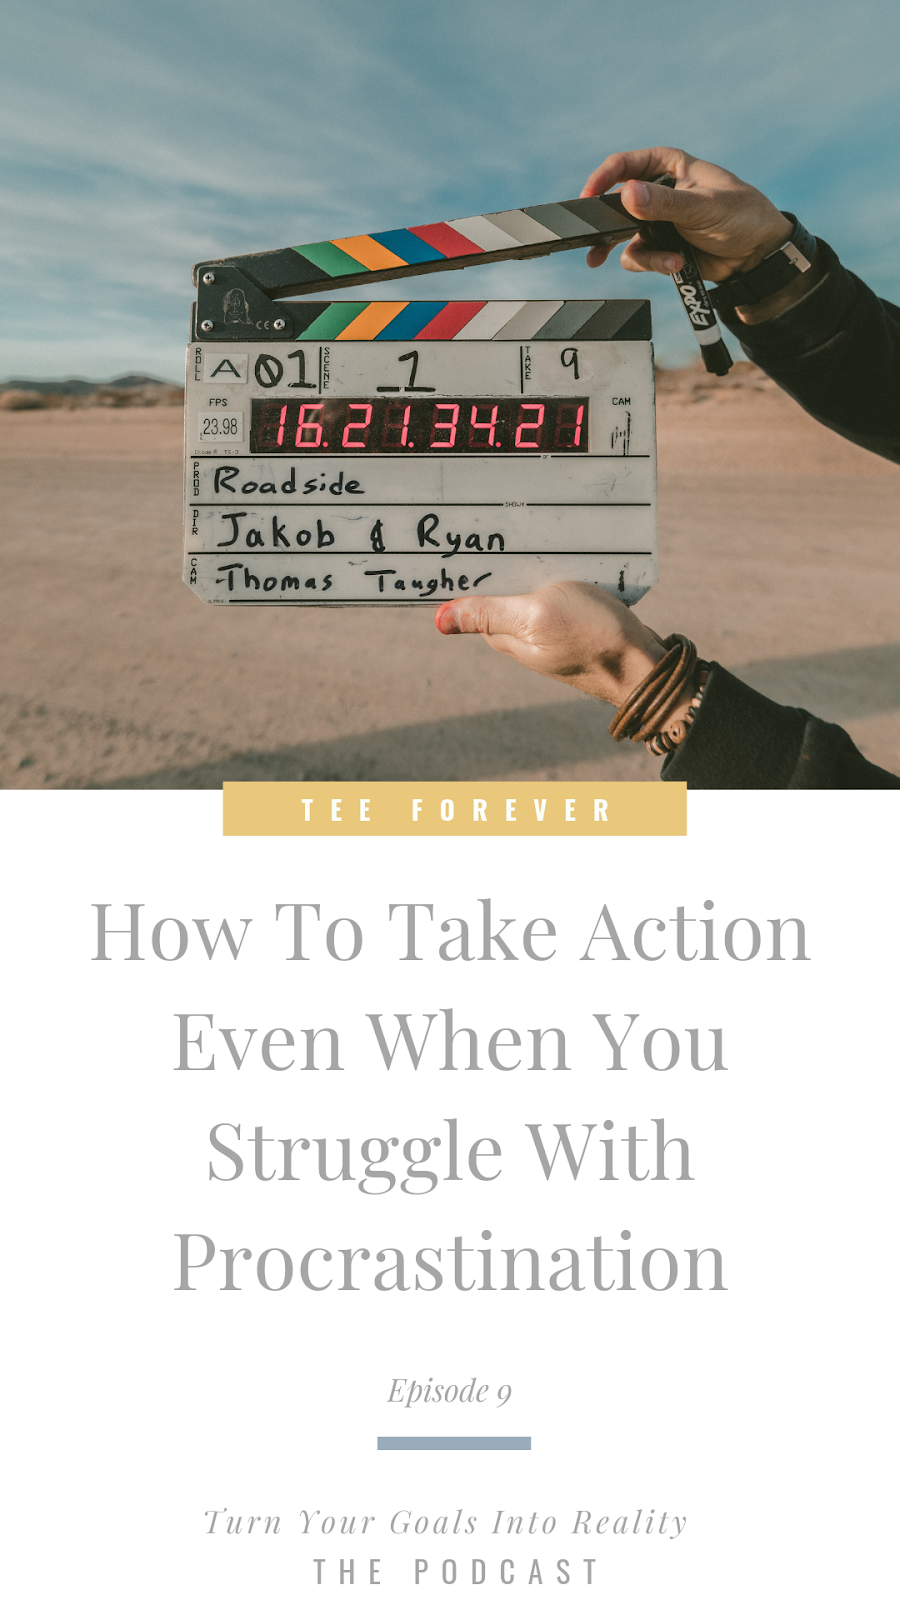 How To Take Action Even When You Struggle With Procrastination